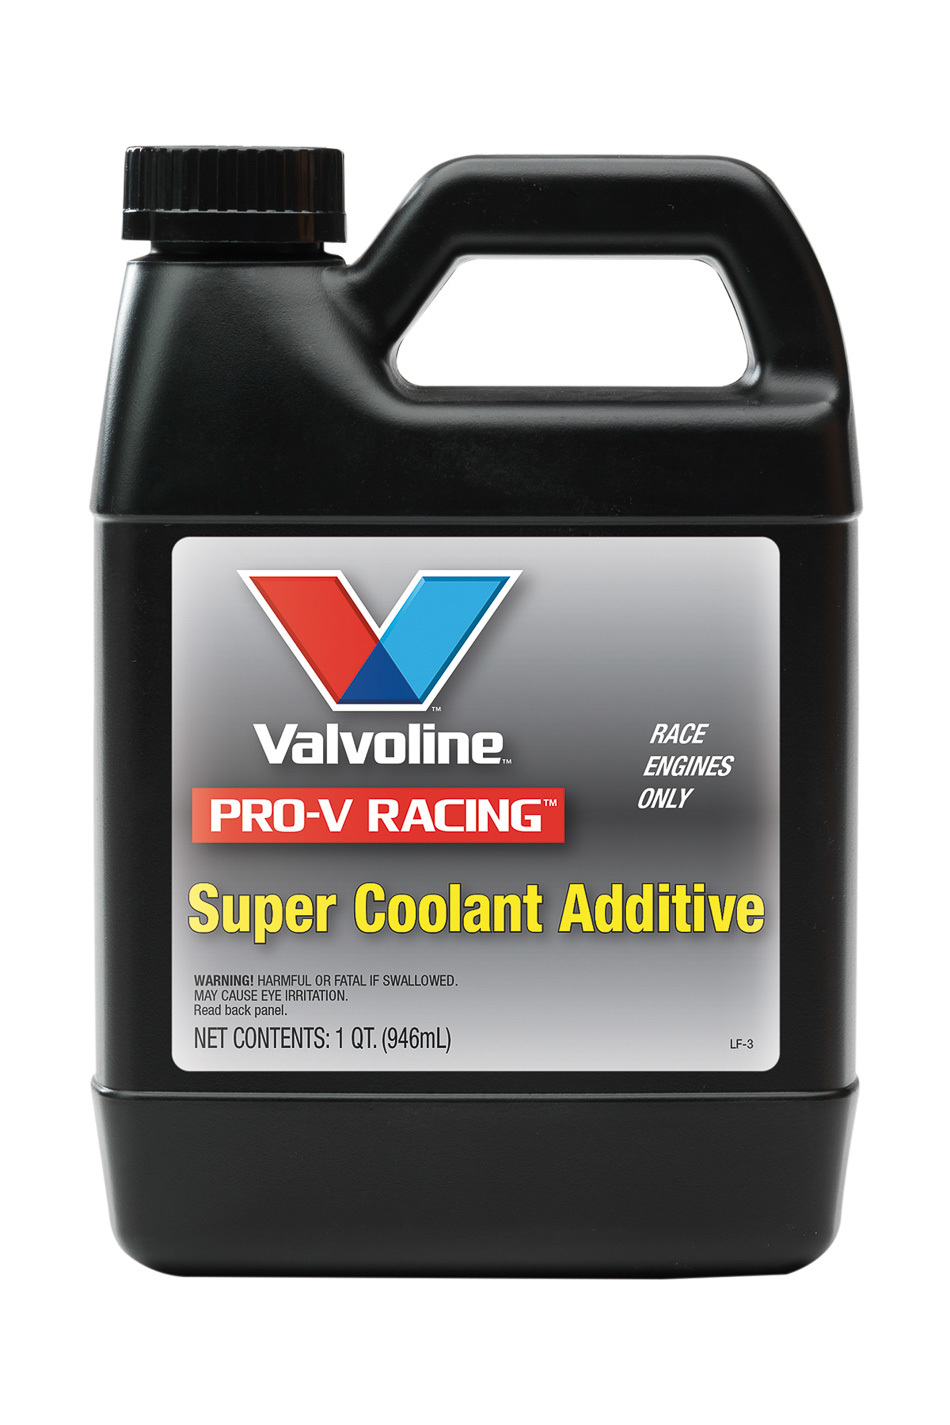 Pro-V Racing Super Coola nt Case 6x1 Quart Bottle